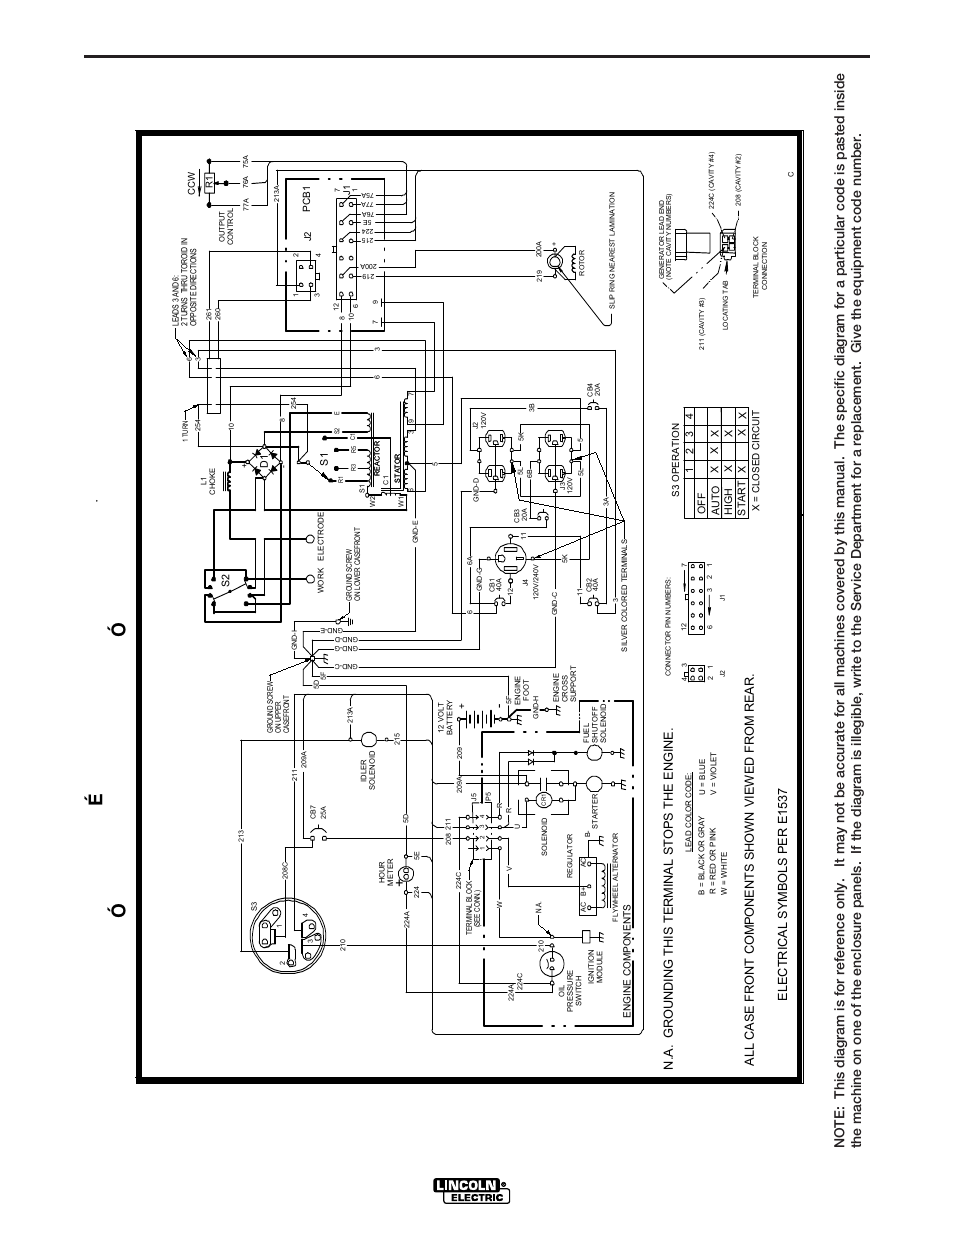 Mazda Miata 1990 Fuse Box Auto Electrical Wiring Diagram Hayward 400 Heater 1989 626 Parts Transmission